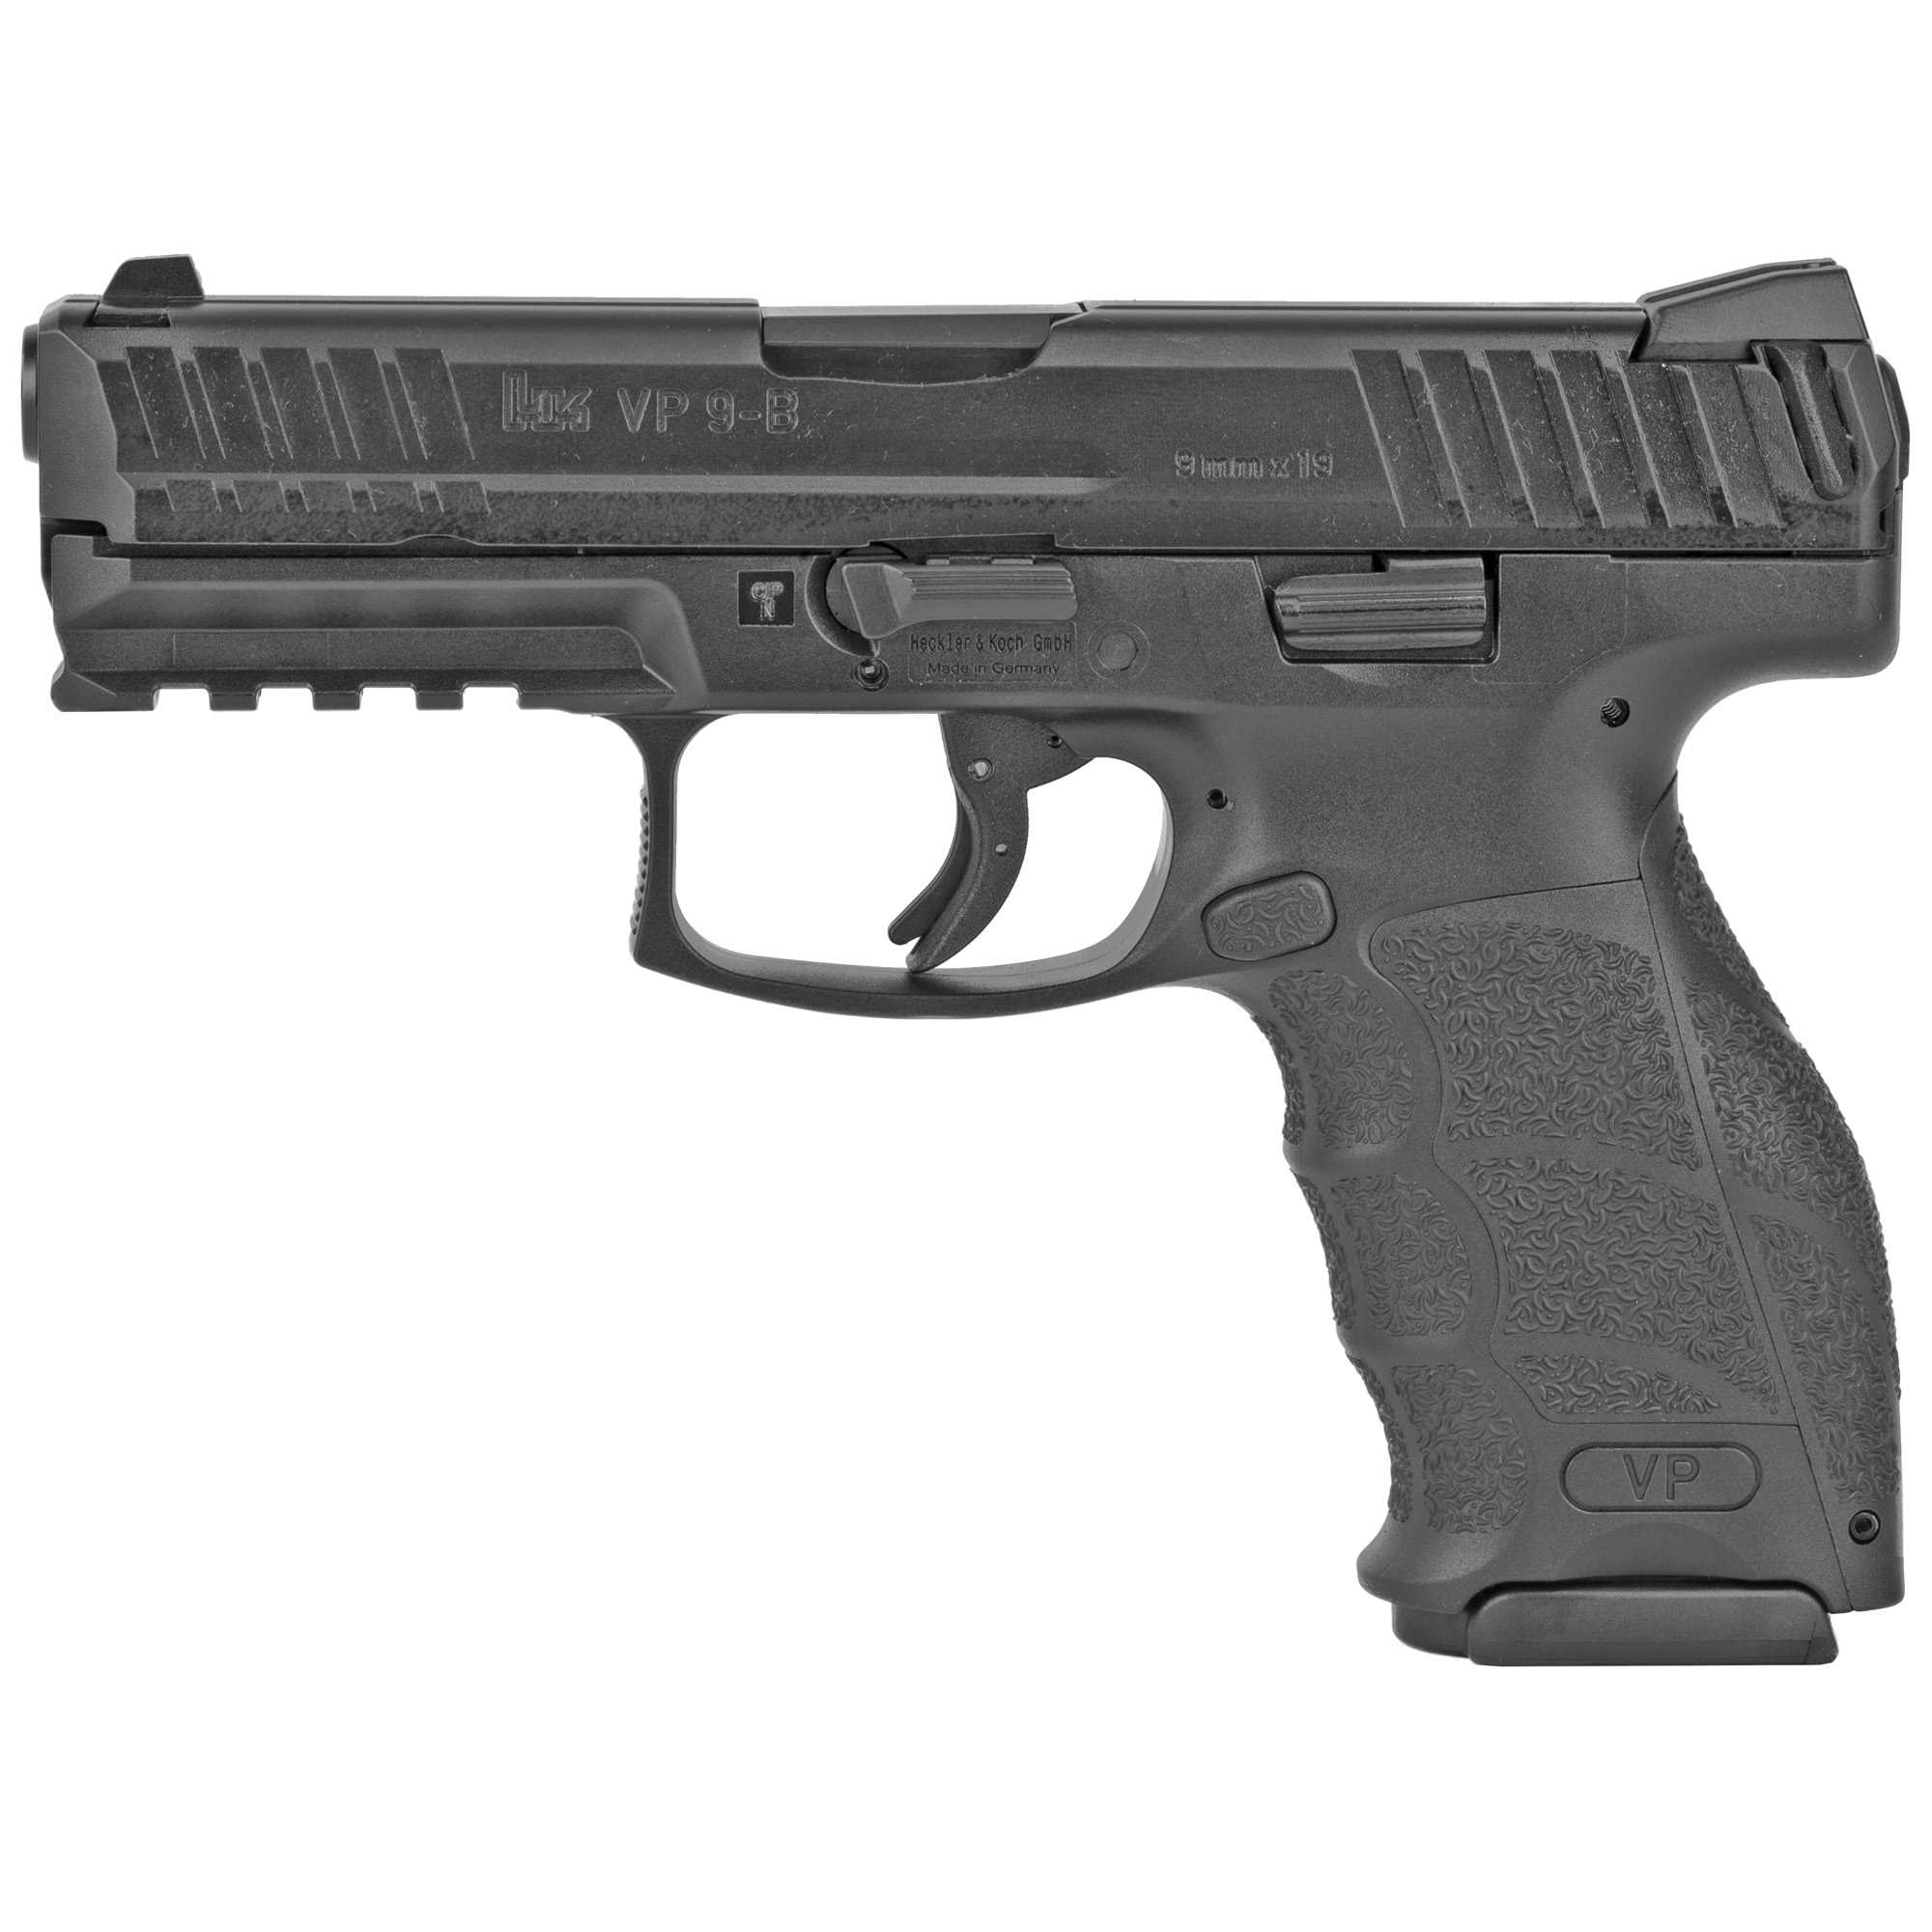 """New for 2018"""" the VP9-B offers a new US-style reversible push-button and utilizes the same magazines as the other VP9 Series. Depending on your shooting style"""" you can now choose between a European-style ambidextrous paddle mag release or the new US-style reversible button. This determination must be made at the time of purchase"""" as the two models are not convertible"""